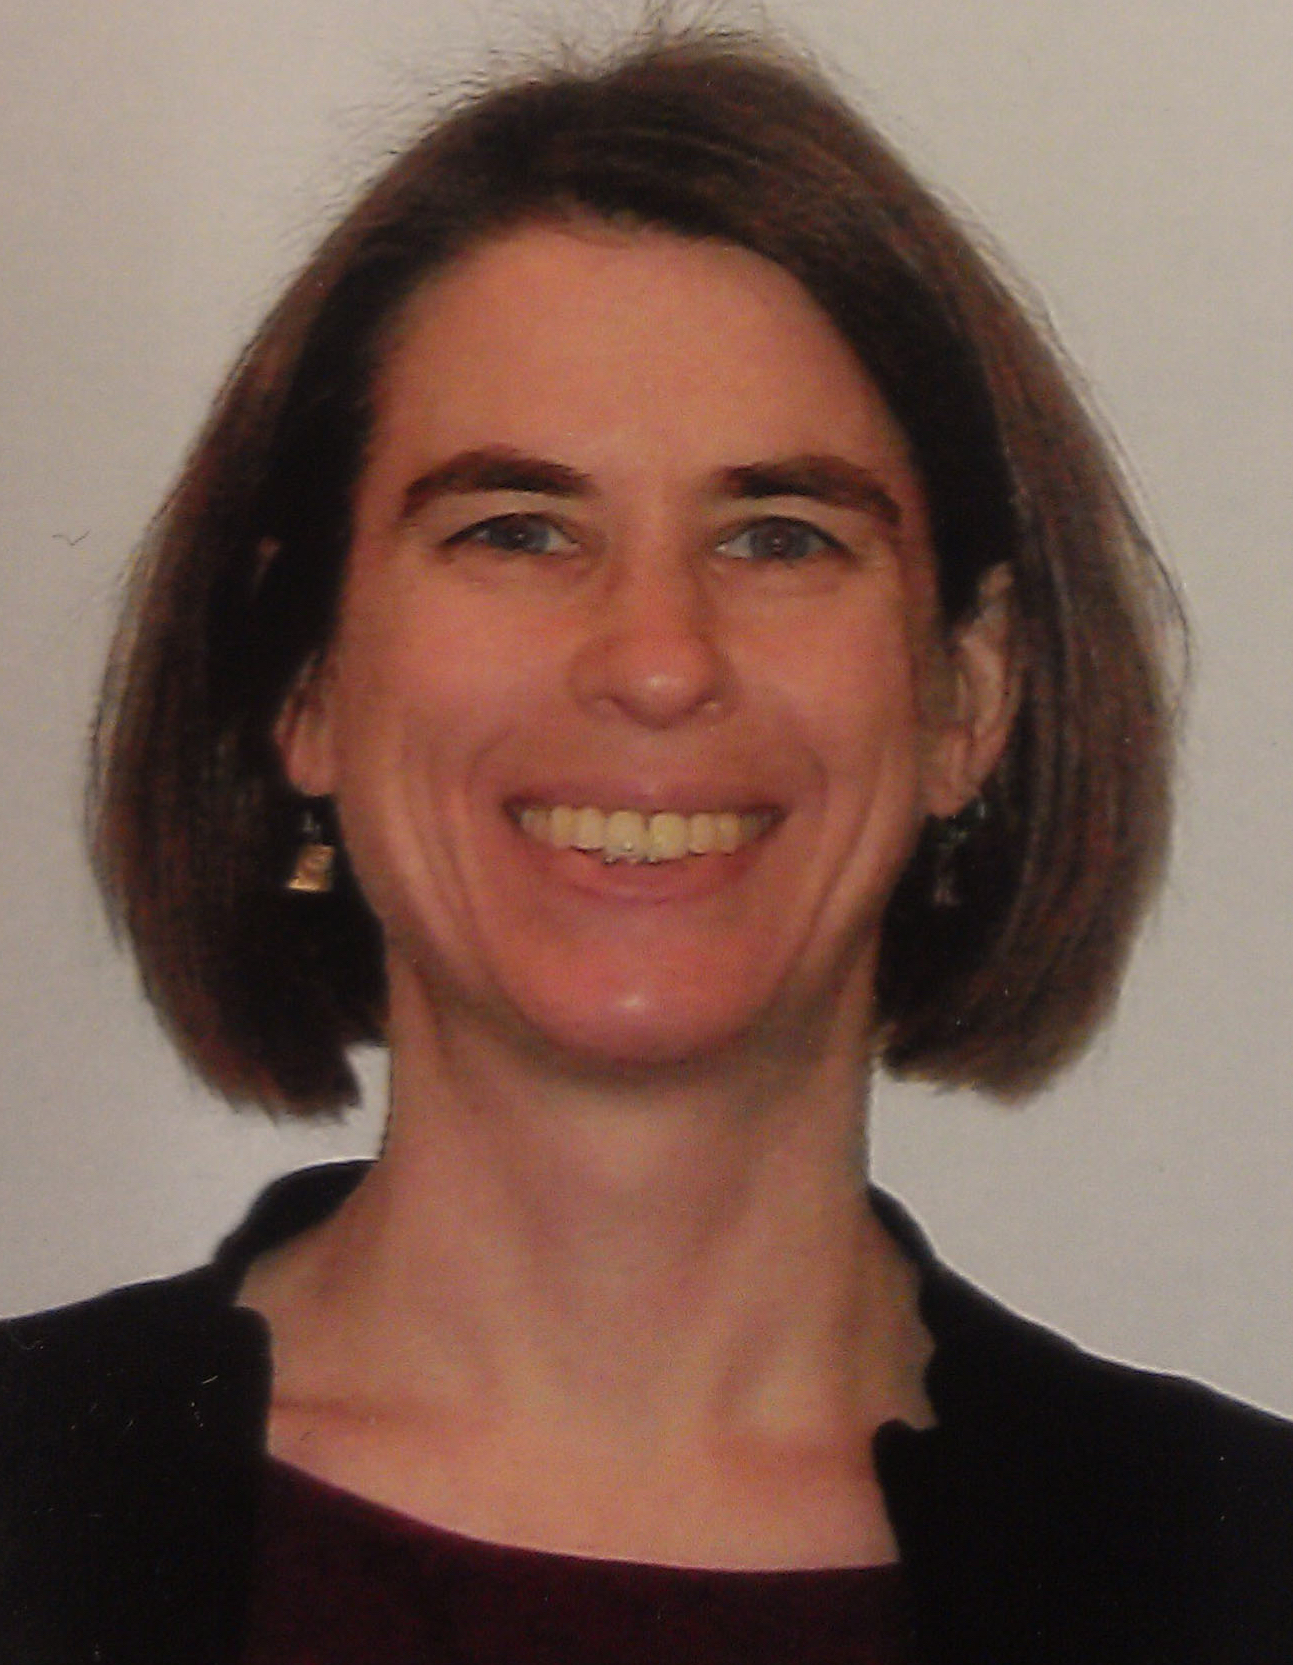 Photo (headshot) of Valerie Schneider, PhD